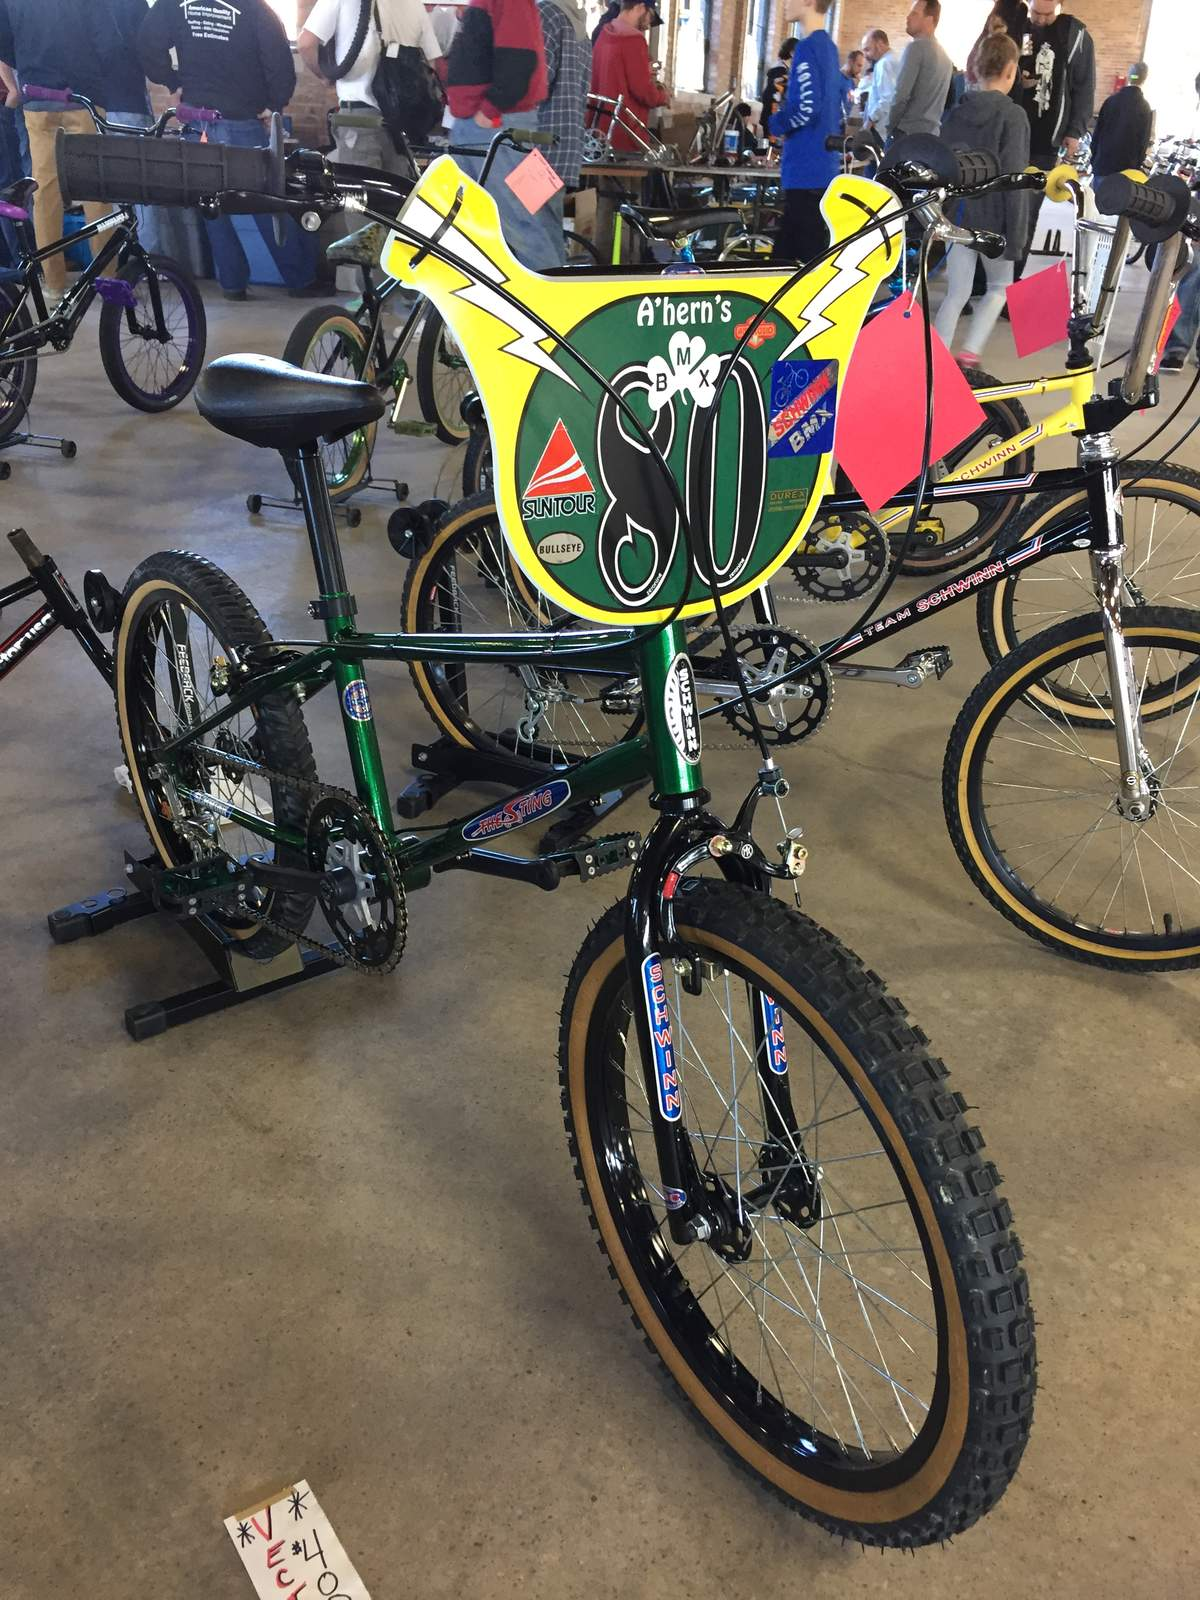 http://uploads.bmxmuseum.com/user-images/95057/img_247959a7728935.jpg